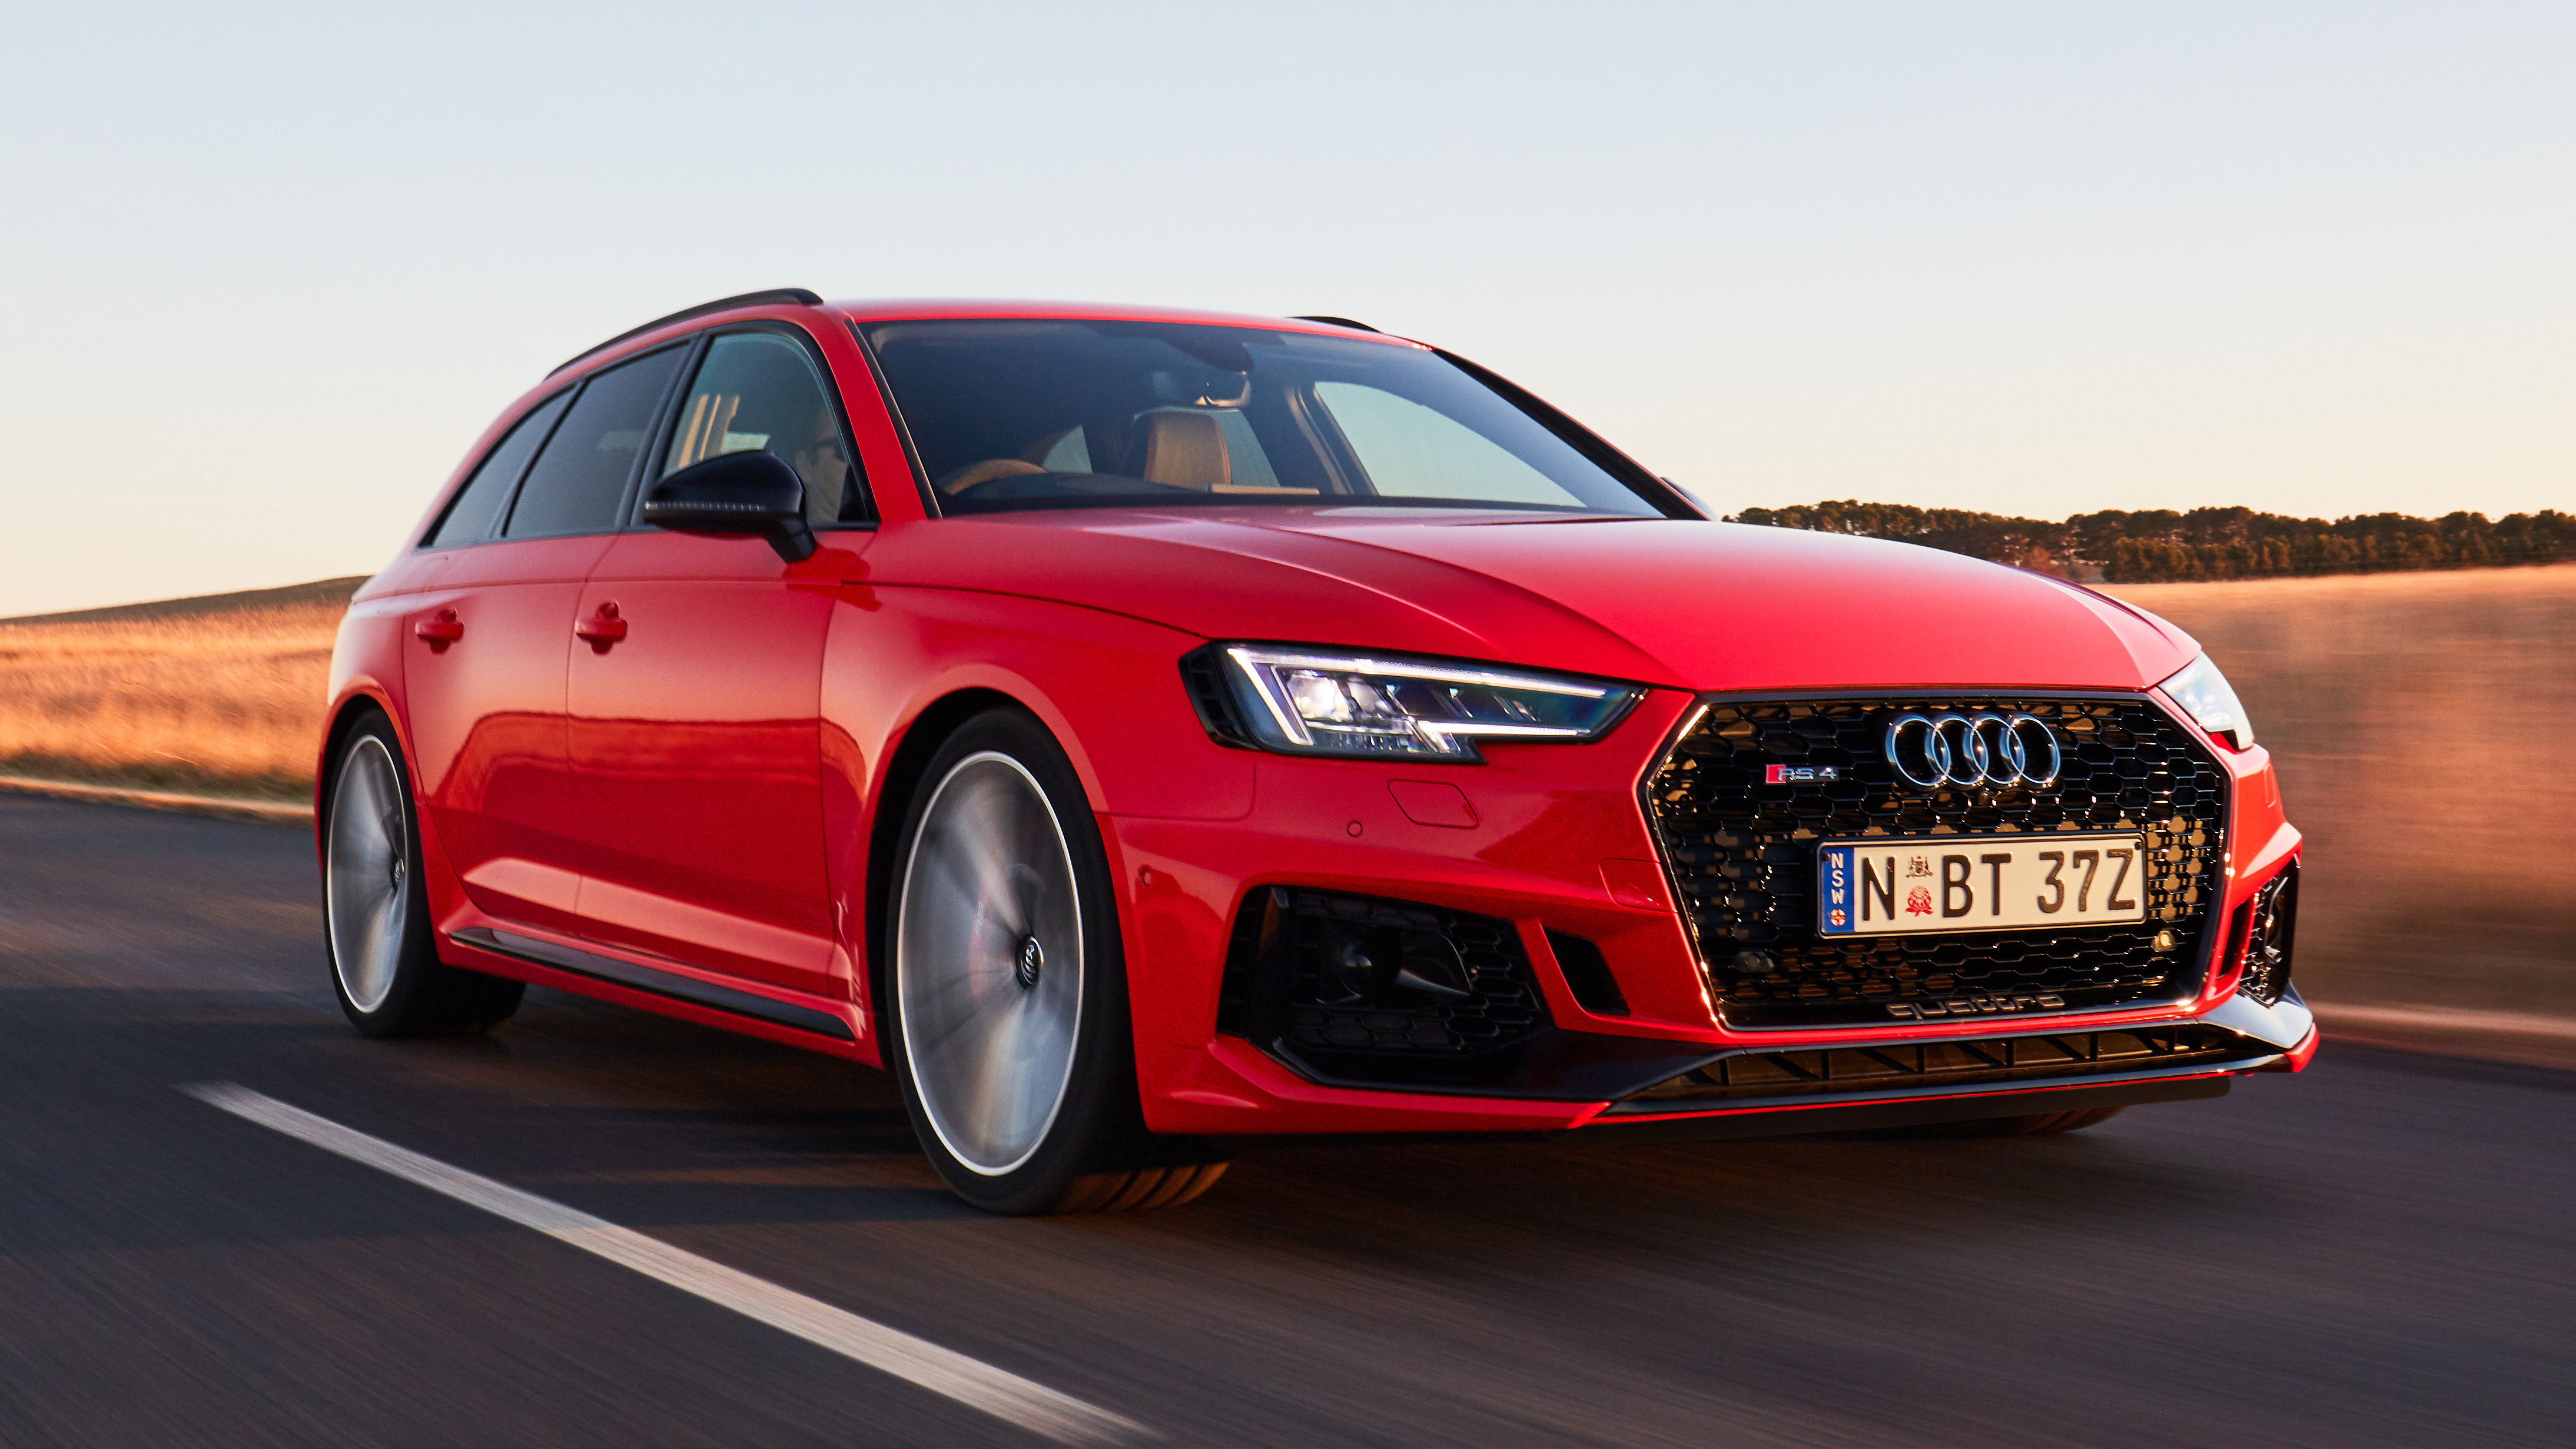 The new Audi RS4 Avant brings performance in a practical package.